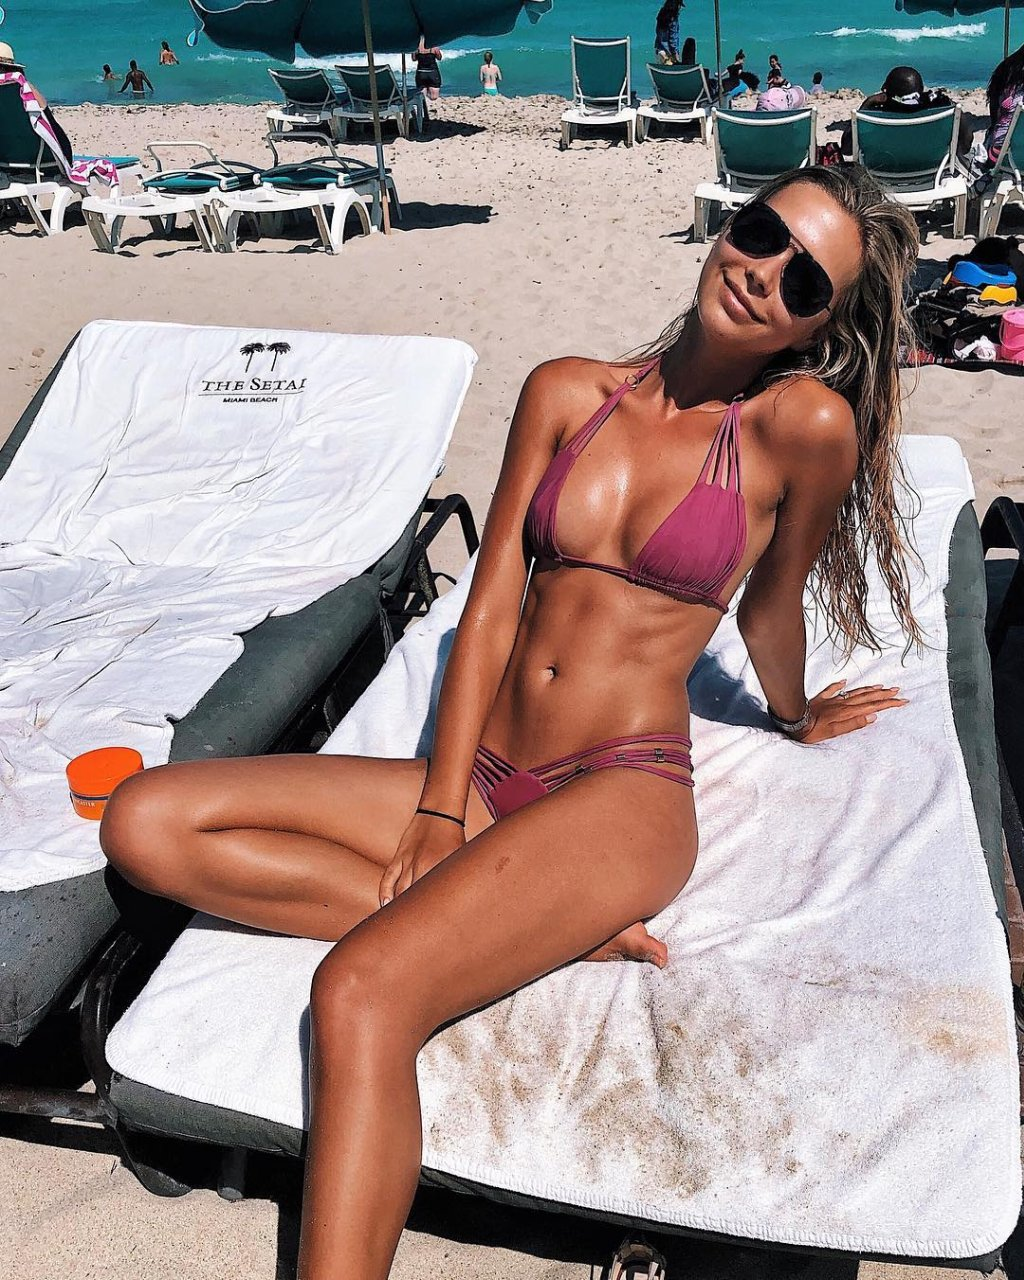 Sandra Kubicka Nude Photos And Videos Thefappening